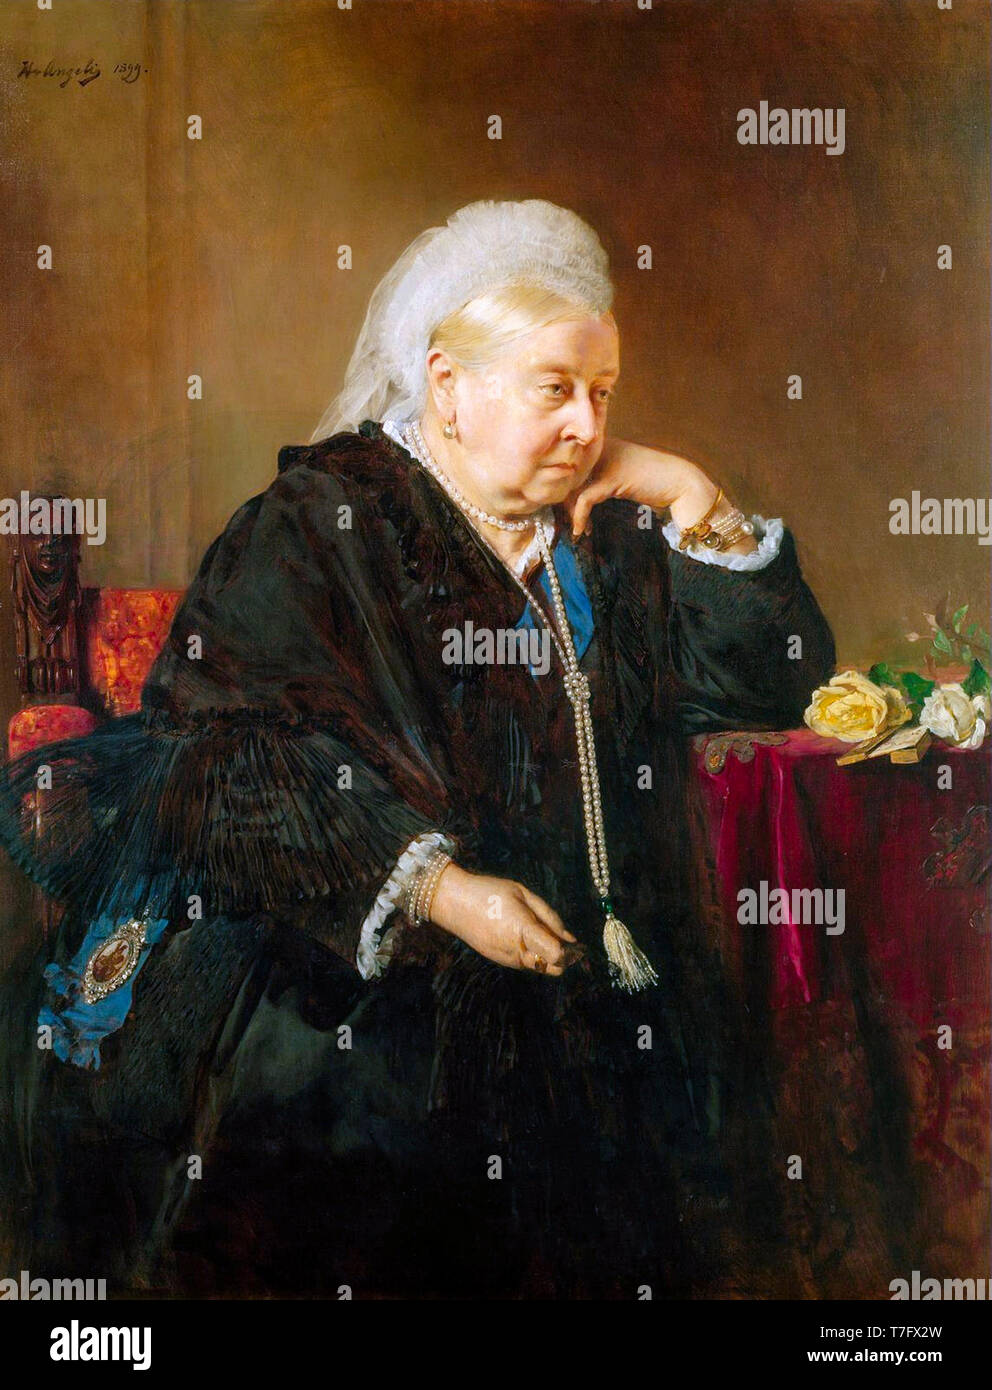 Portrait of Queen Victoria as widow, painting by Heinrich von Angeli, 1899 - Stock Image